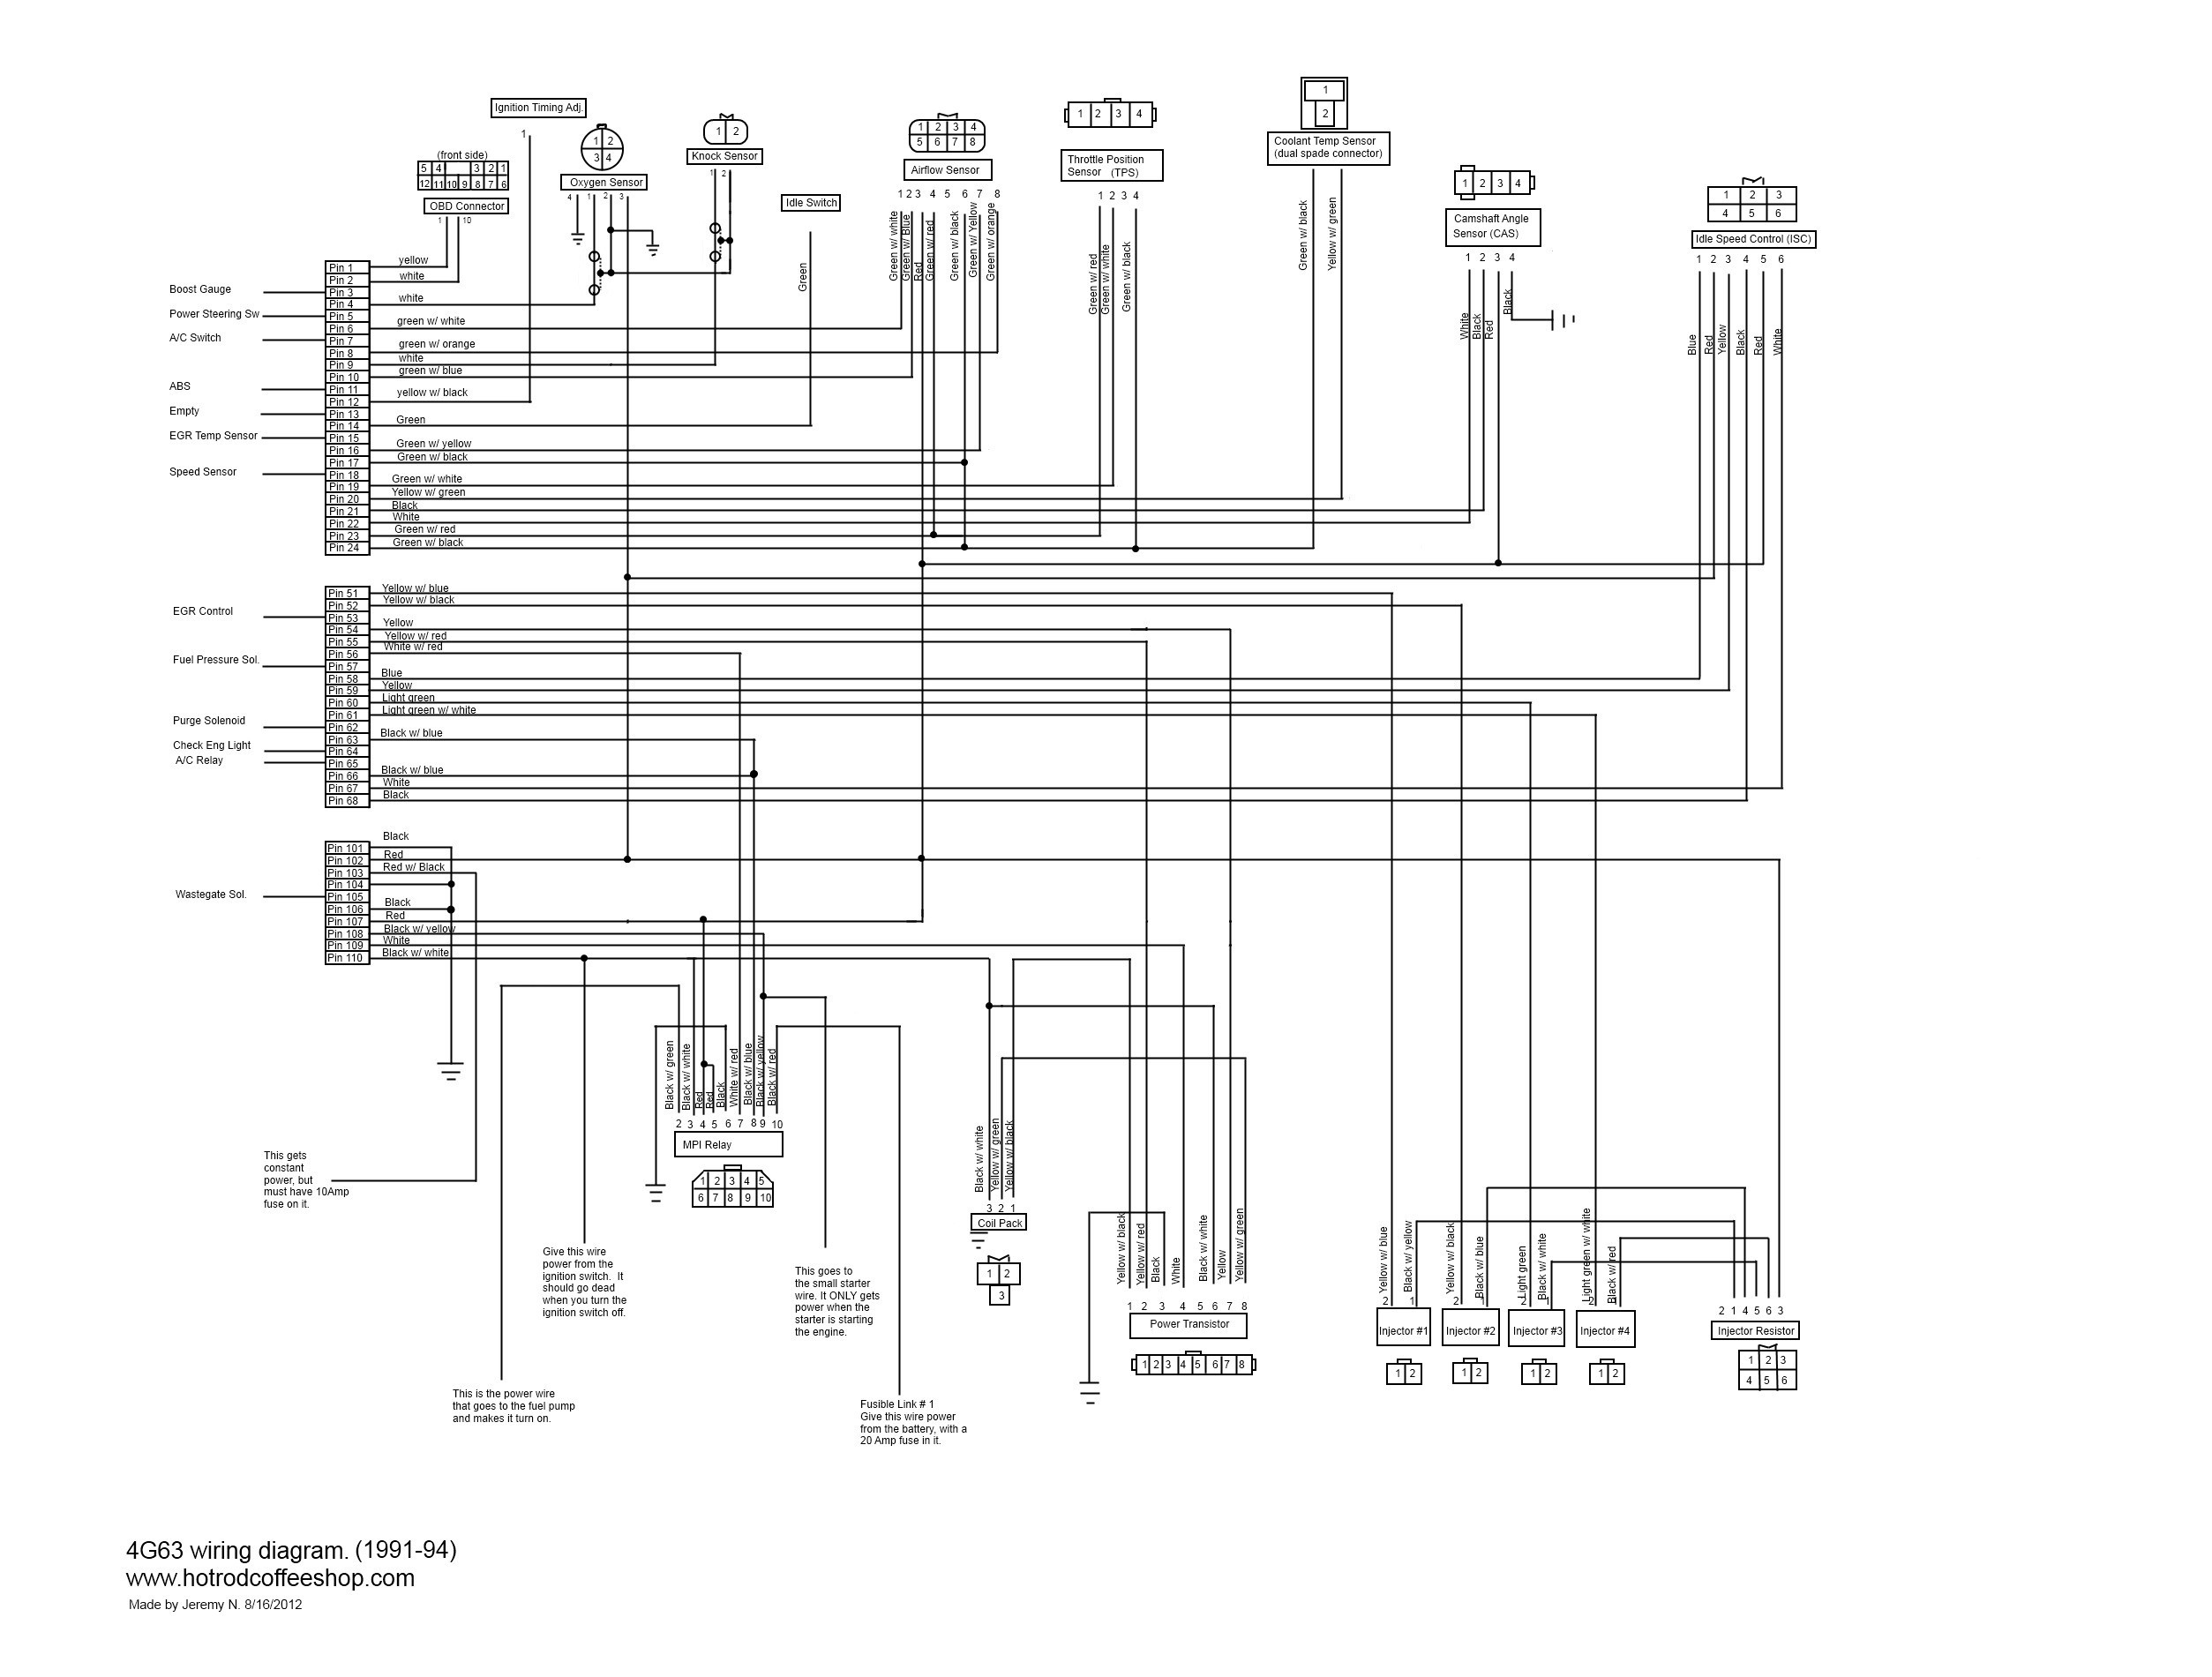 Wiring Diagram For Mitsubishi Lancer